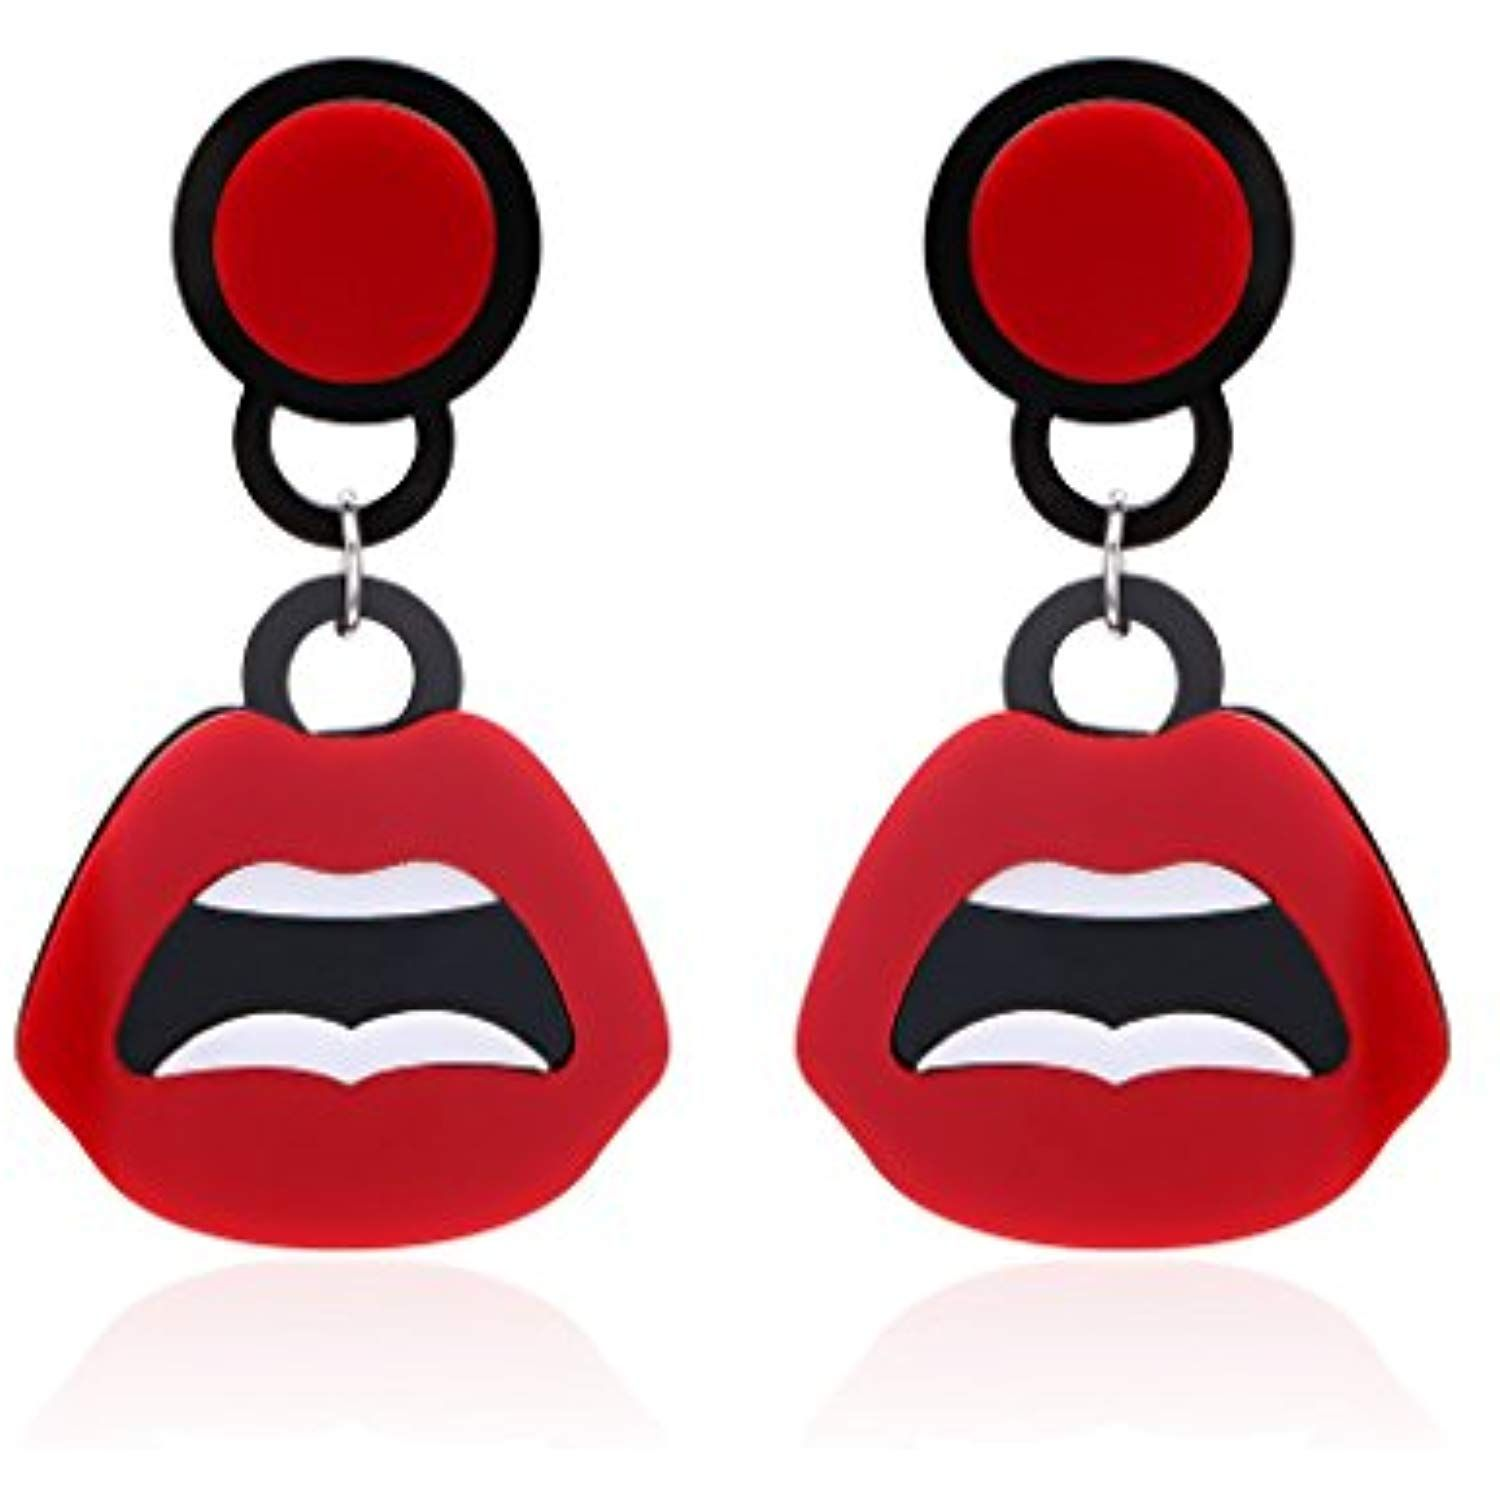 Red Lips Fun Kiss Stud Earrings Novelty Jewelry For Girl And Women